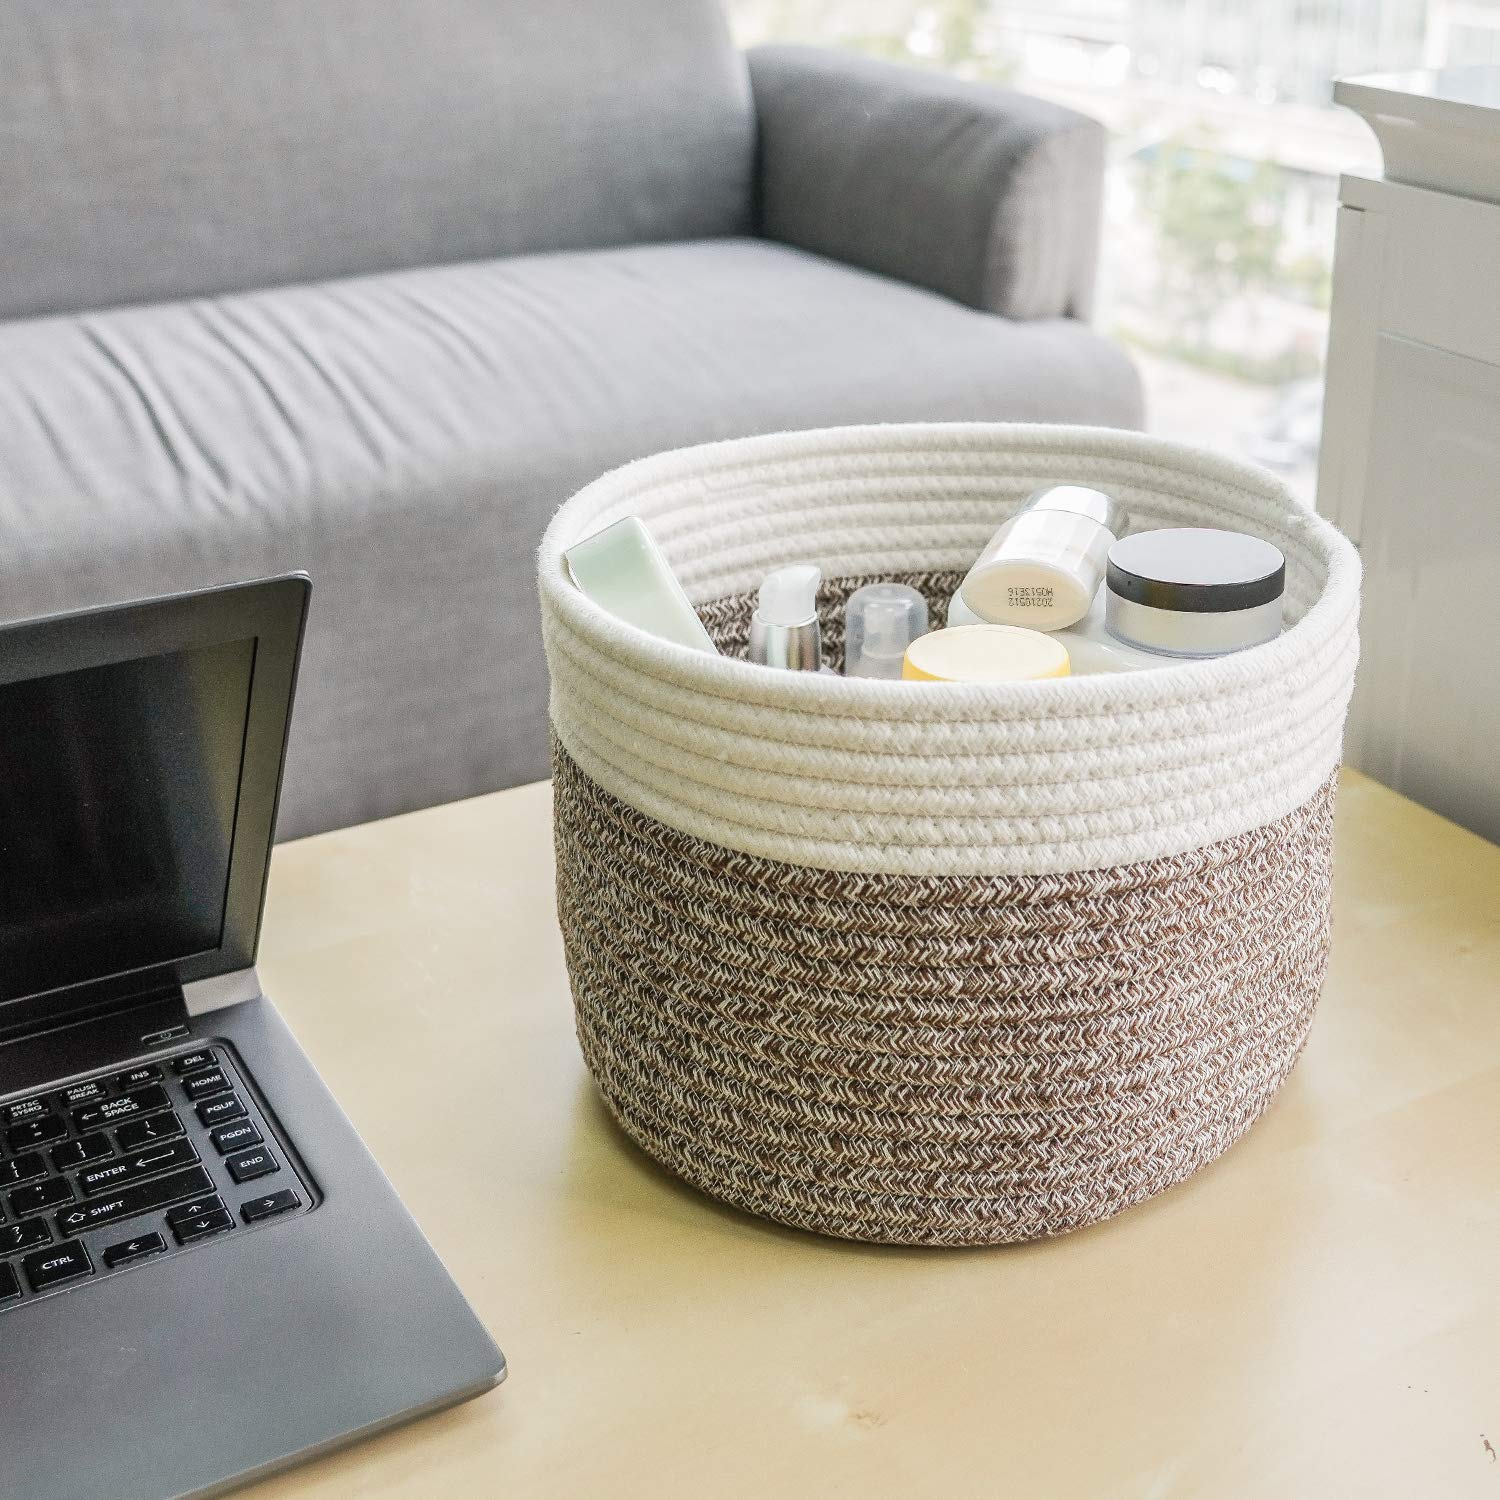 9.4Dx7.1H Cotton Rope Basket Woven Basket for Keys Sunglasses Toy Basket Wallet by Front Door Small Storage Bin for Remote Controls on Nightstand Fruit Basket in Kitchen INDRESSME Small Basket